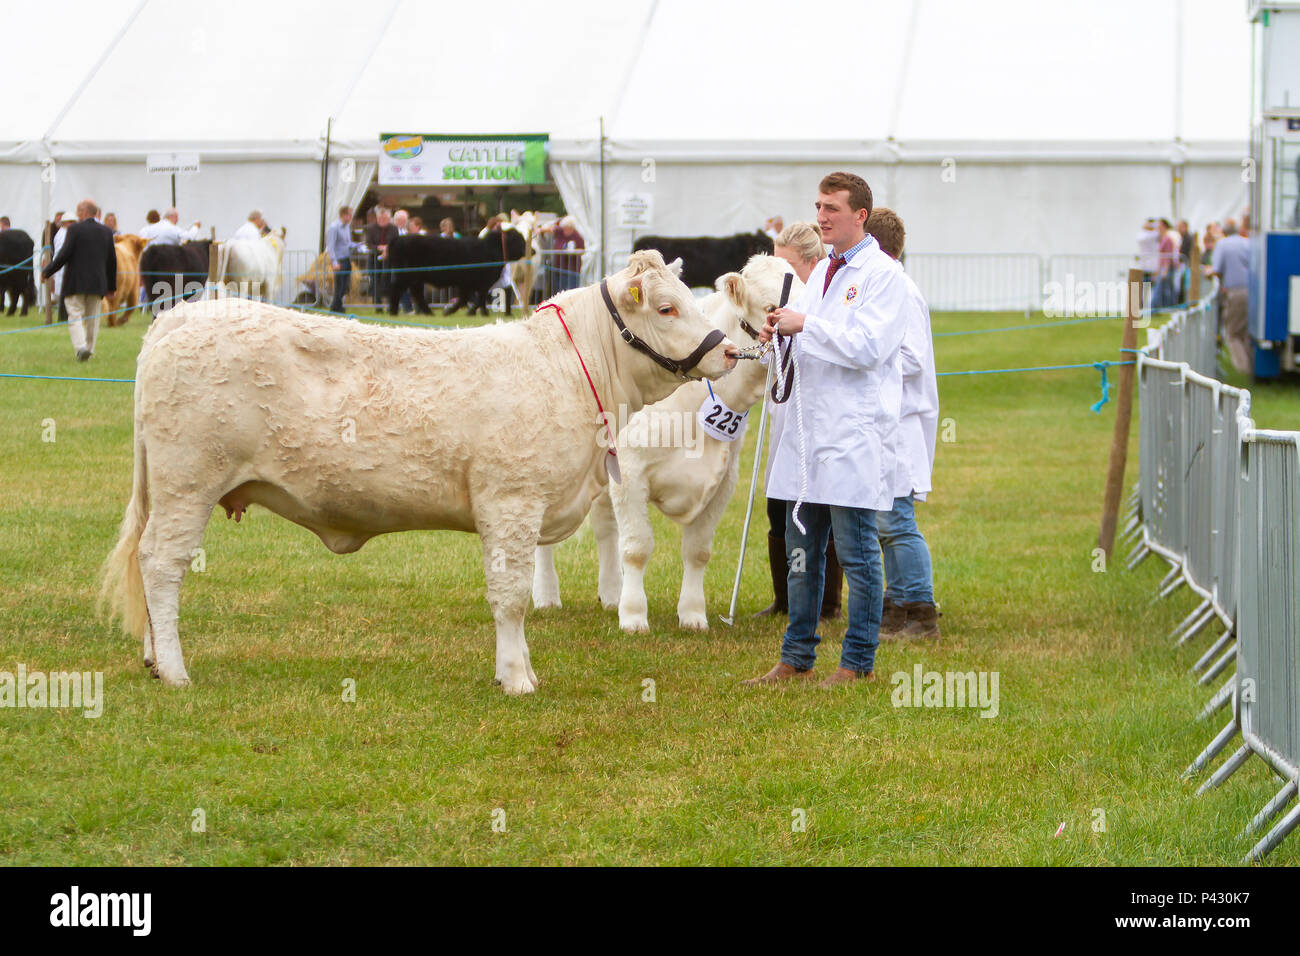 Cheshire, UK. 19 June 2018. The Cheshire Showground at Clay House Farm Flittogate Lane, Knutsford hosted the 2018 Royal Cheshire County Show. The Show is about the fabulous sights, characters & flavours of Cheshire & beyond Credit: John Hopkins/Alamy Live News - Stock Image